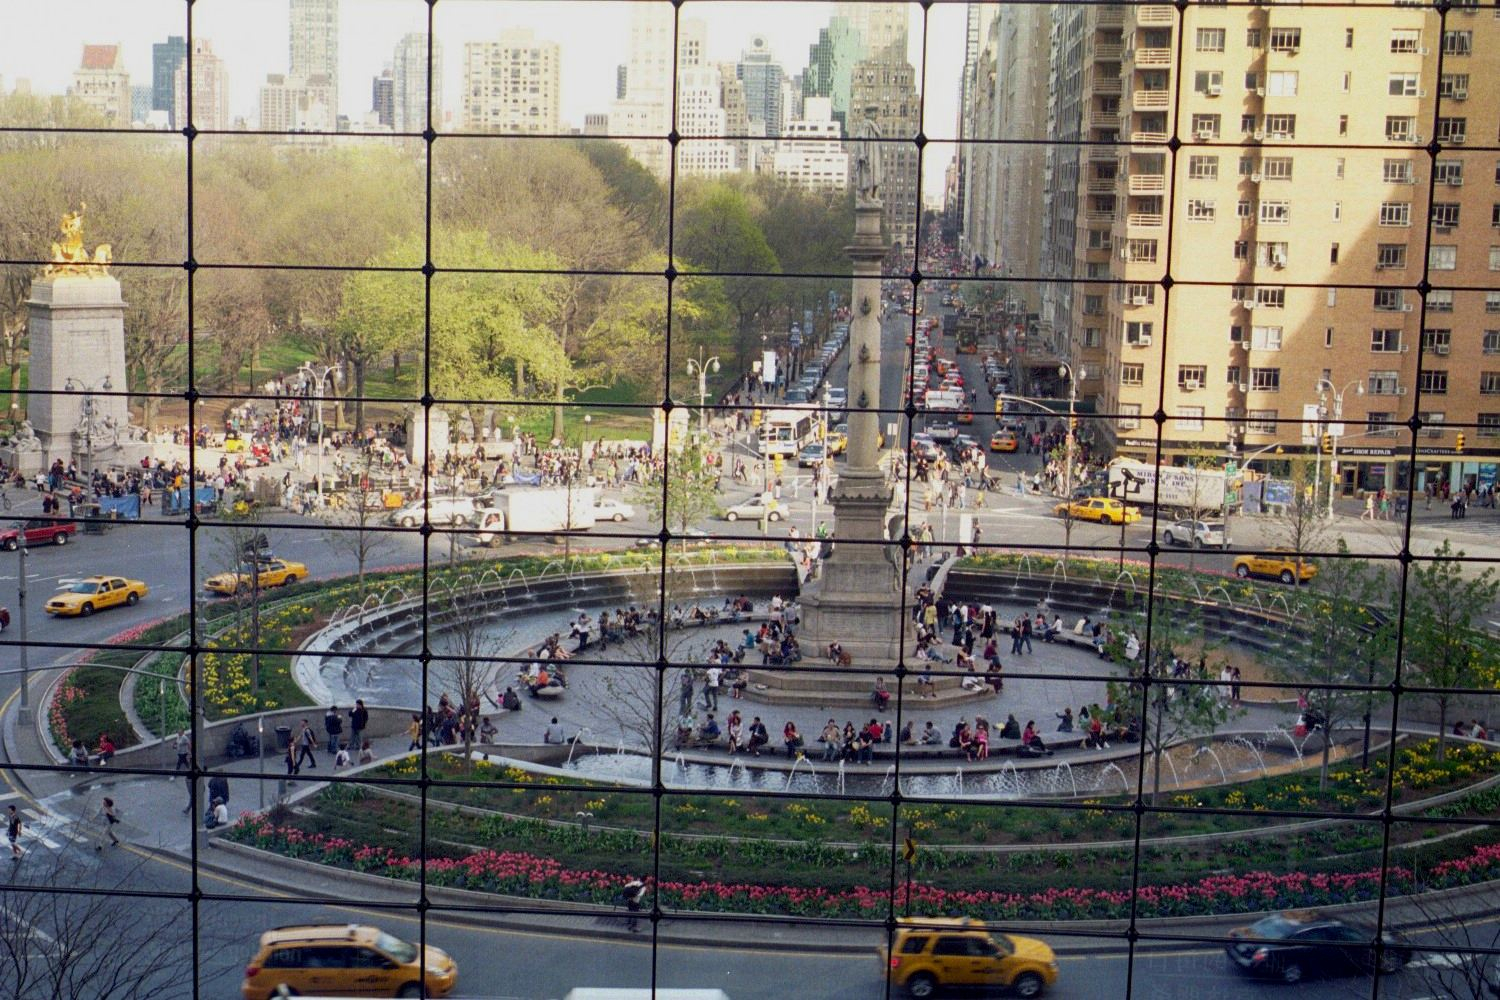 Inam-New York-Columbus Circle-1.jpg